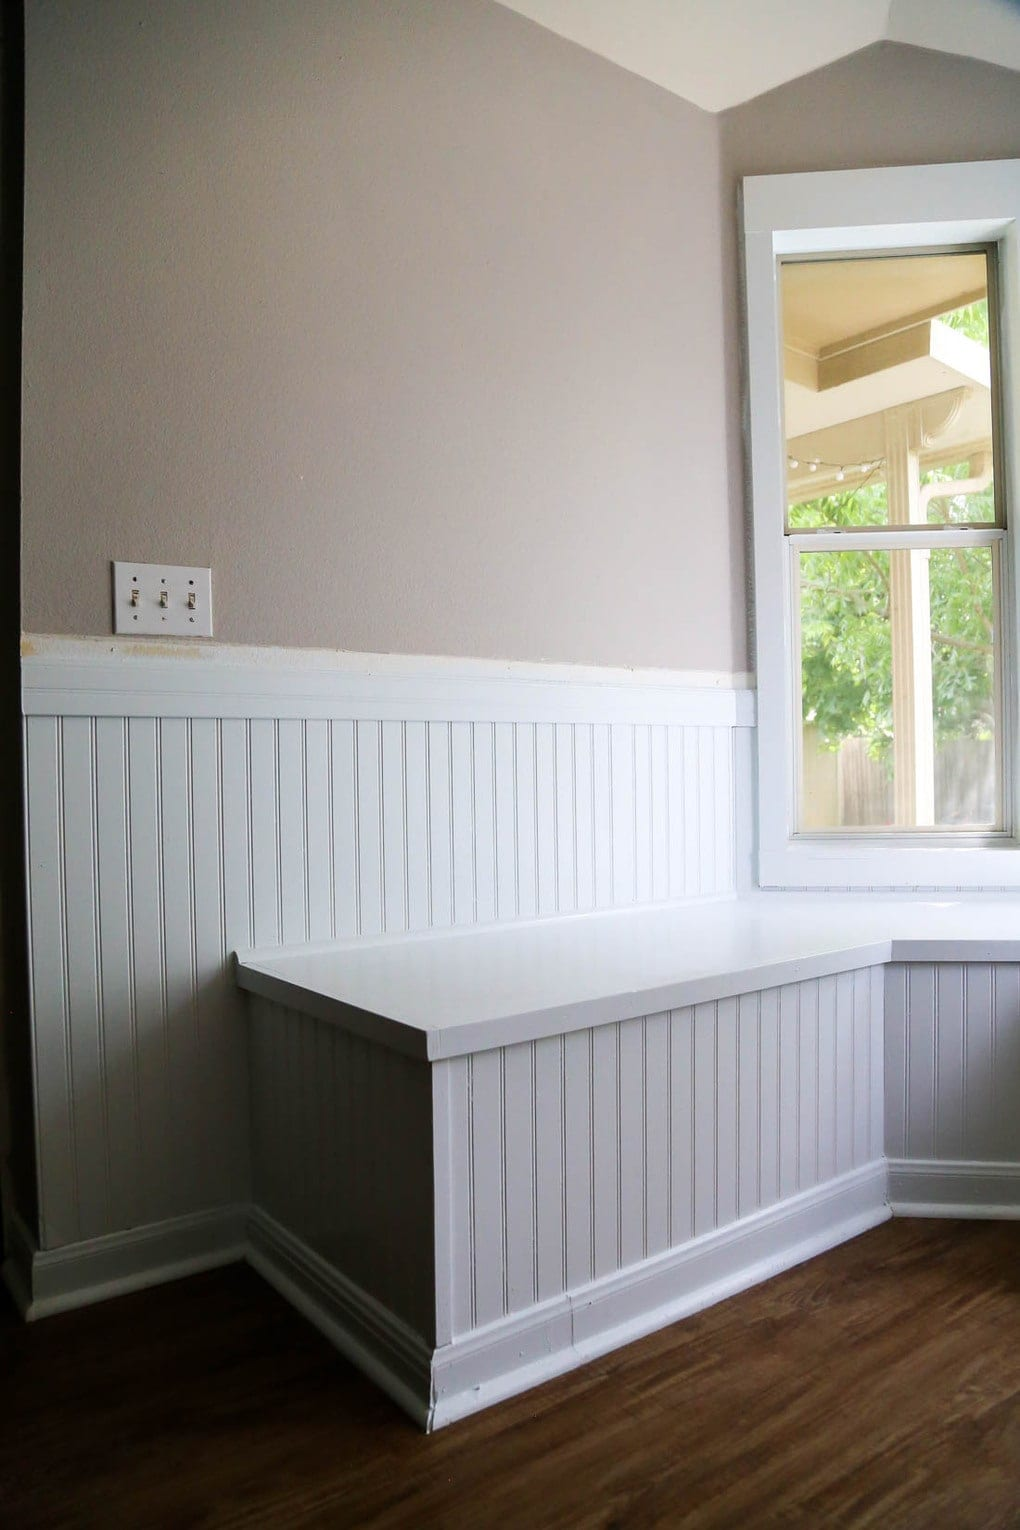 Banquette with beadboard on walls